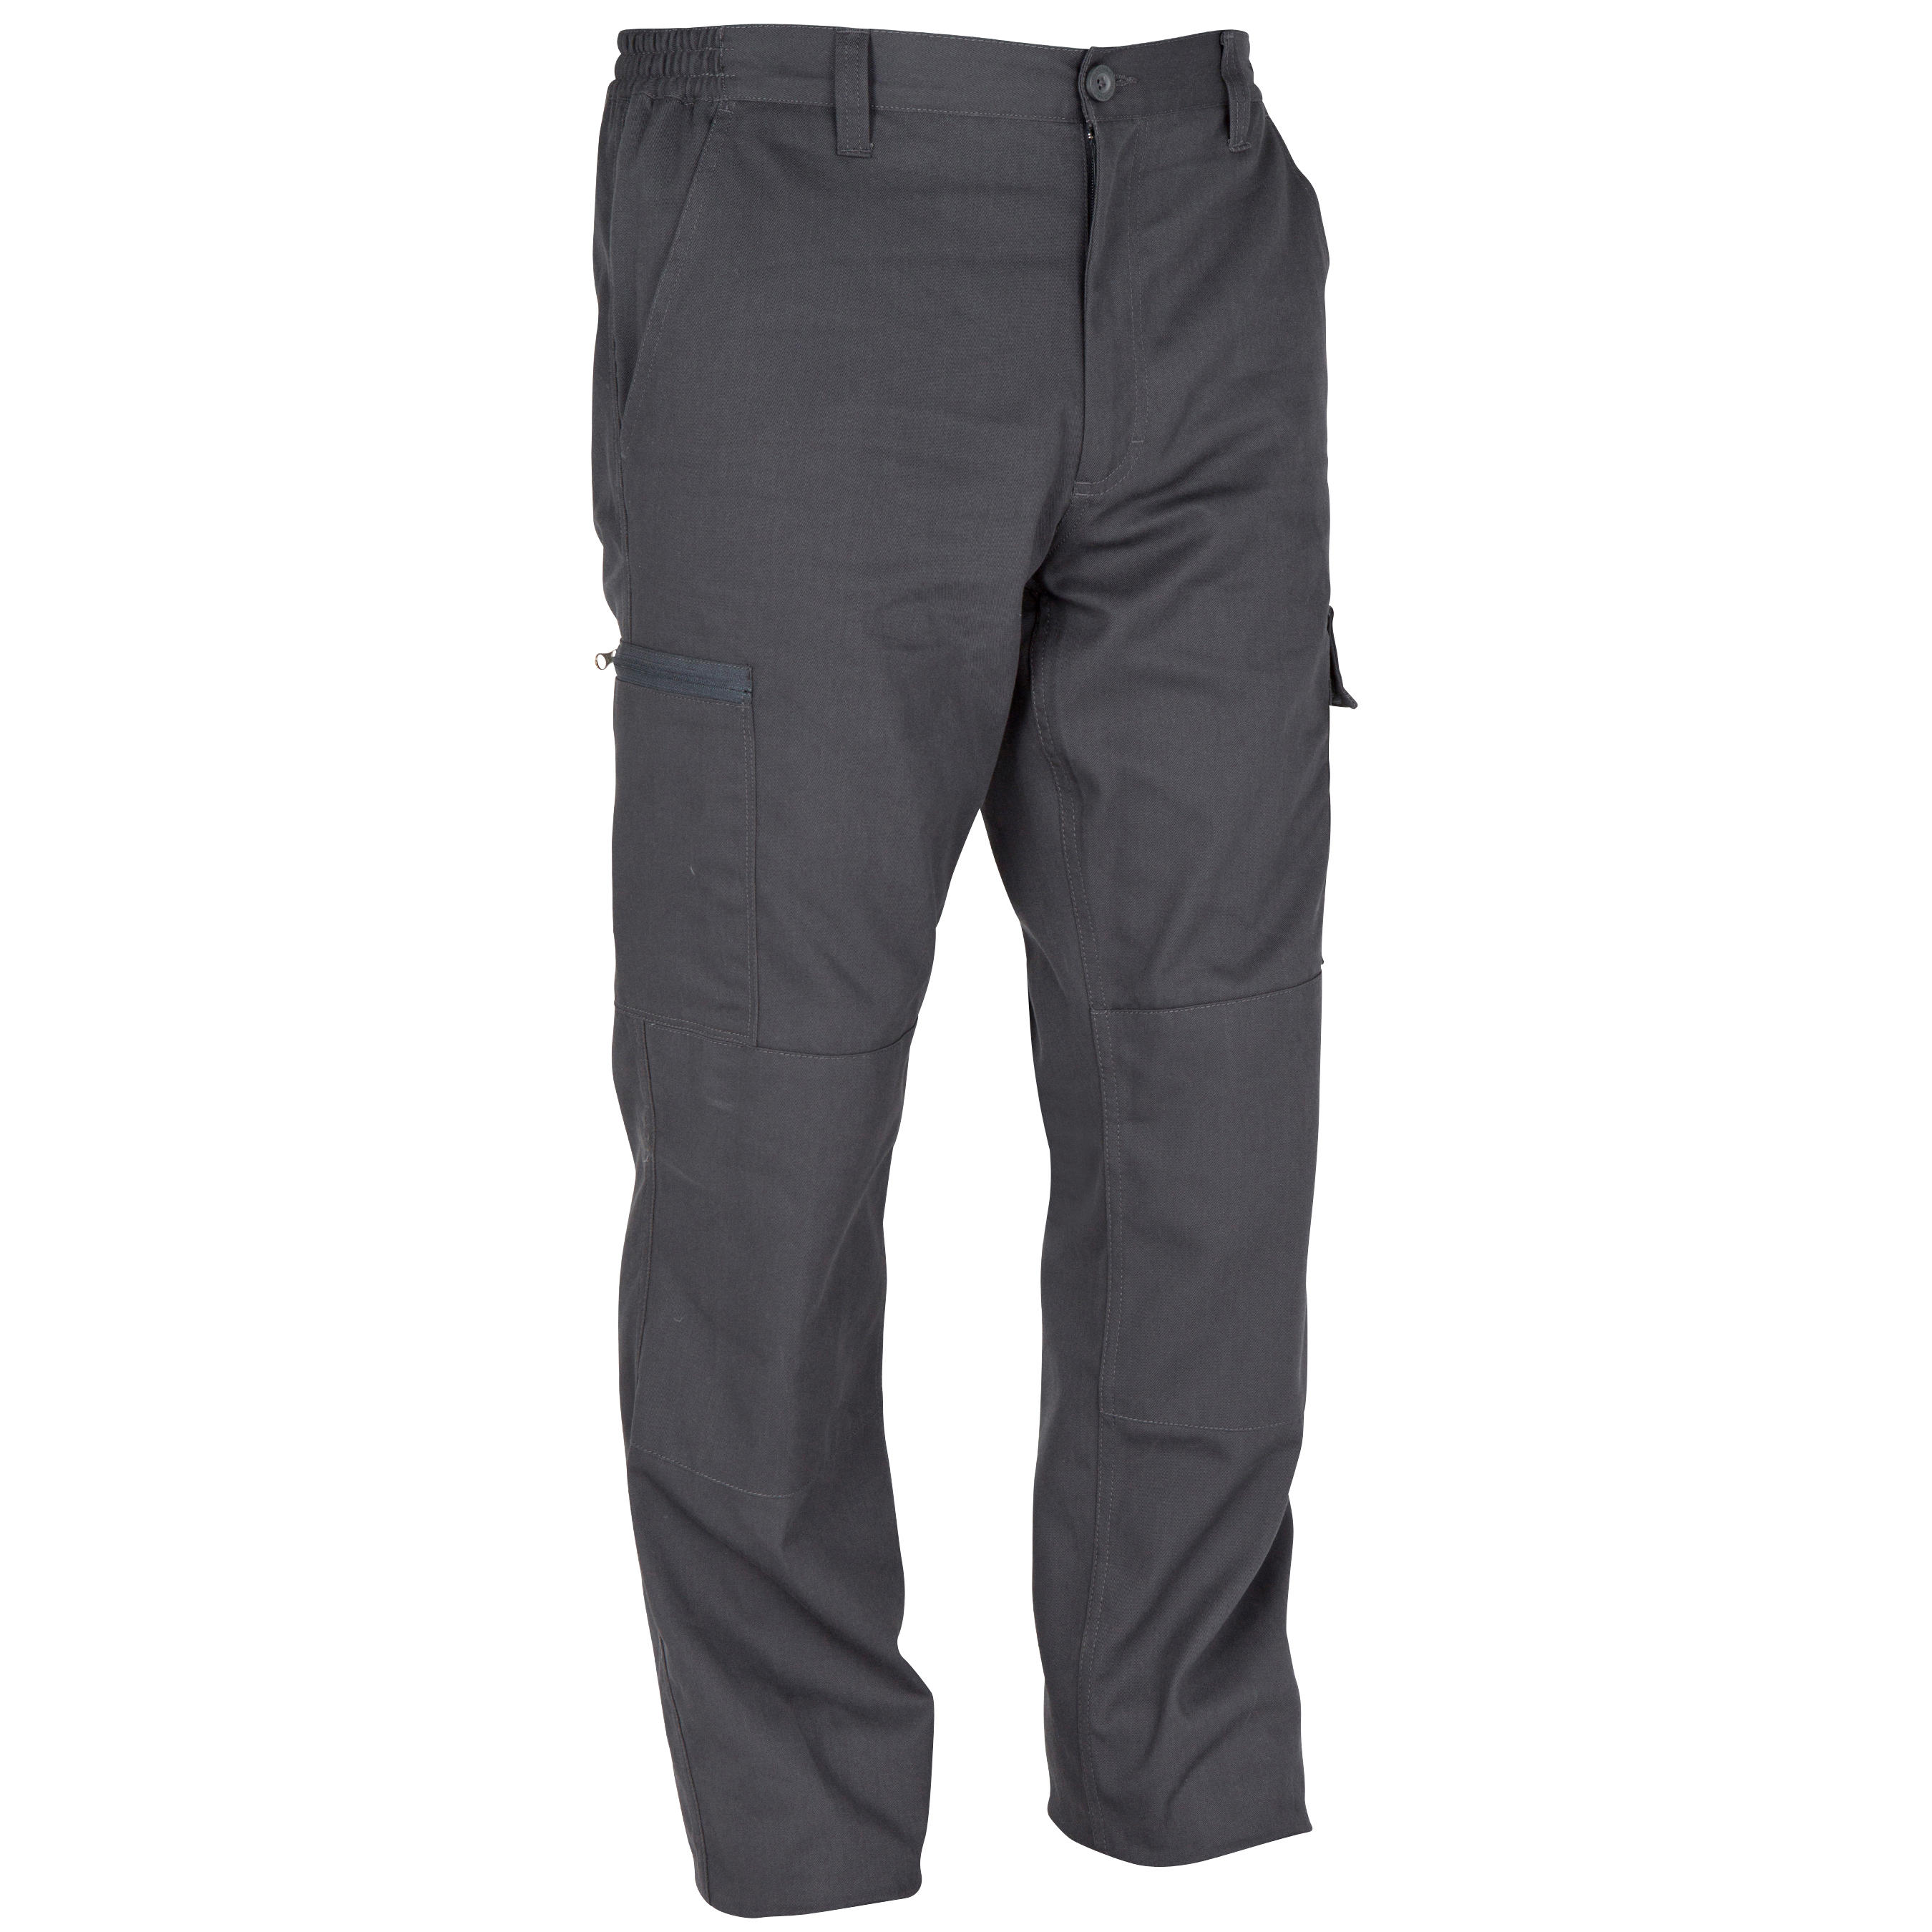 STEPPE 300 Hunting Trousers - grey